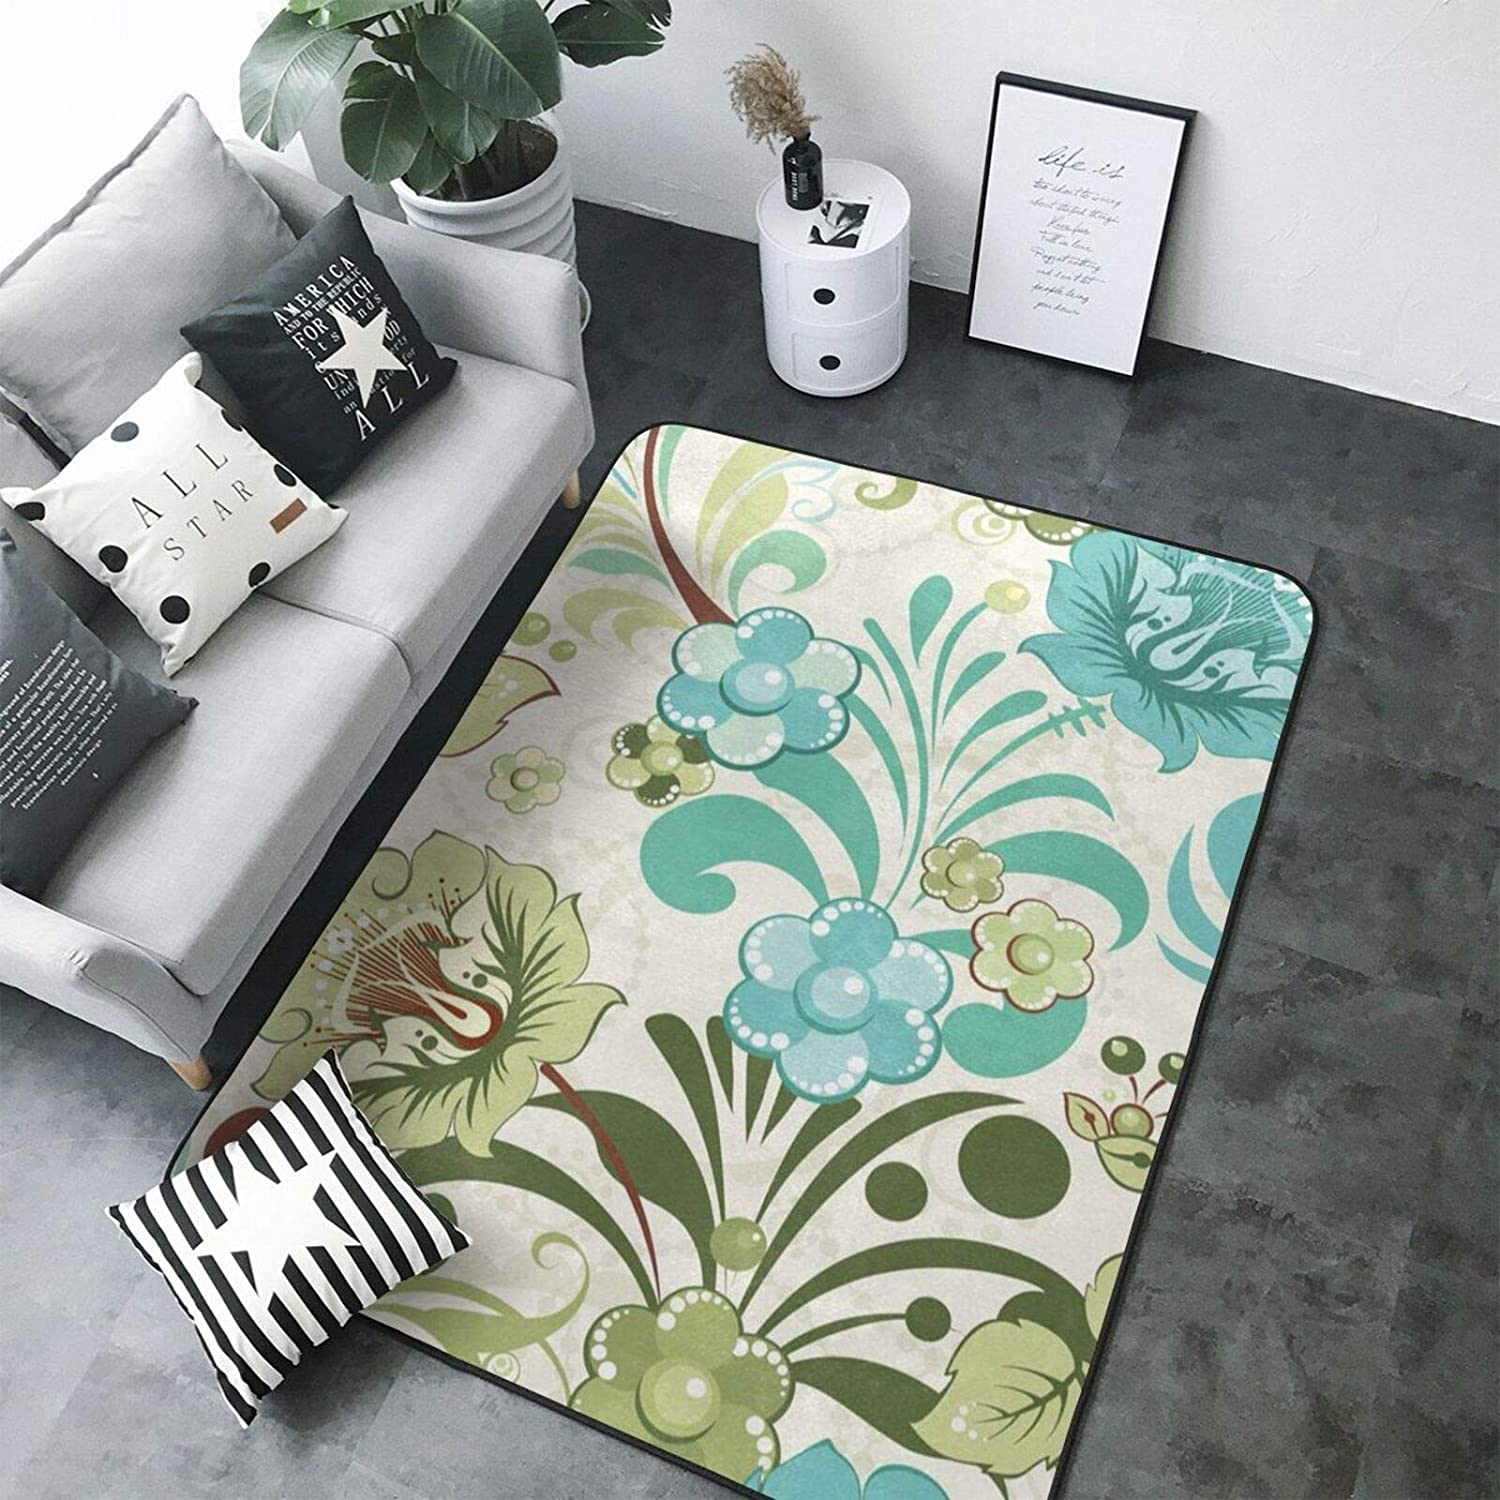 Green Flower Print Area Rugs, Extra Comfy and Soft Carpet, for Bedroom Living Room Bedside Carpet - Modern Indoor Decor (80 X 58 in)